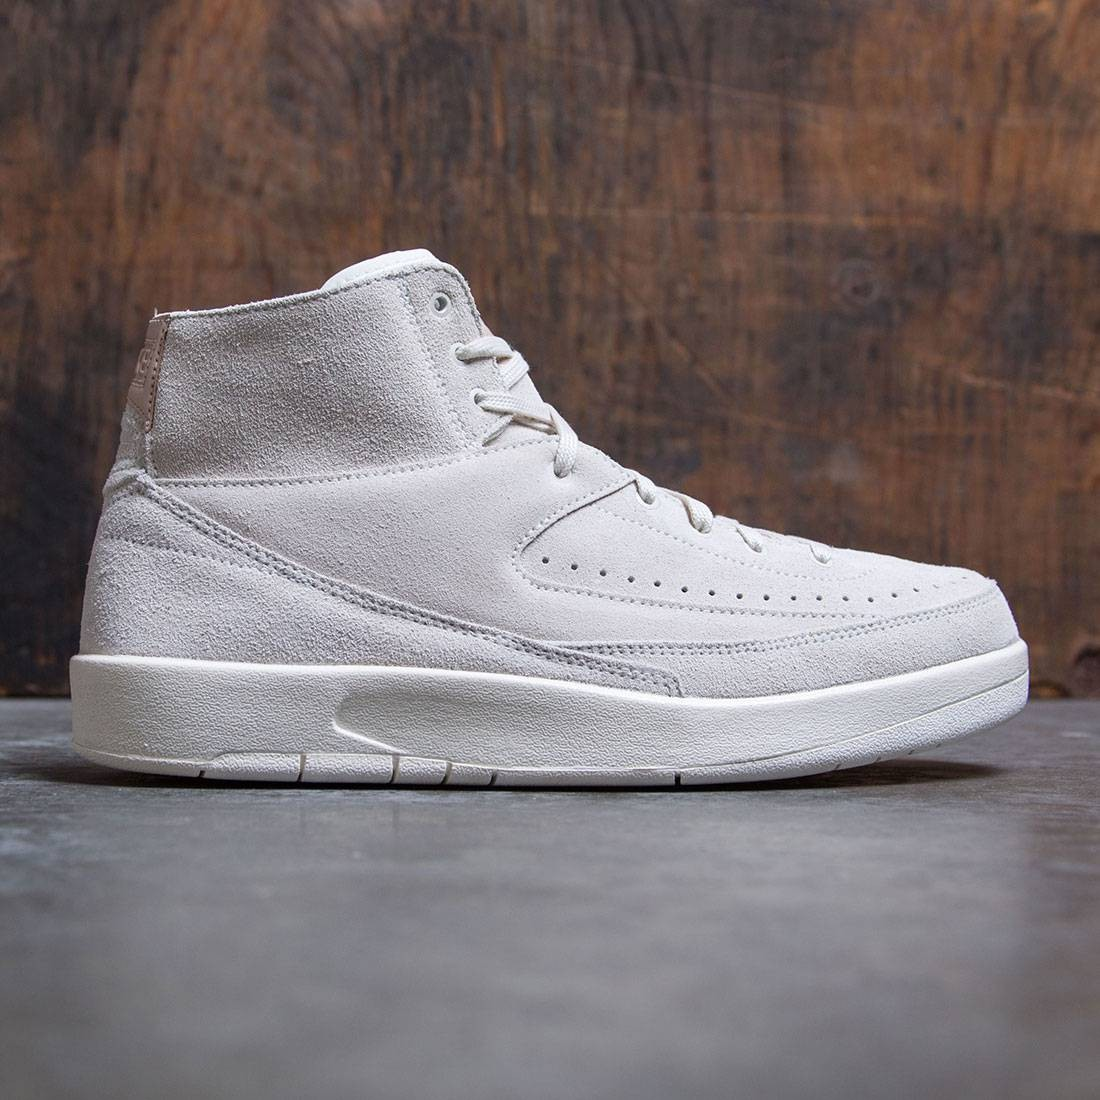 146a9b2610976f jordan men air jordan 2 retro decon sail sail bio beige